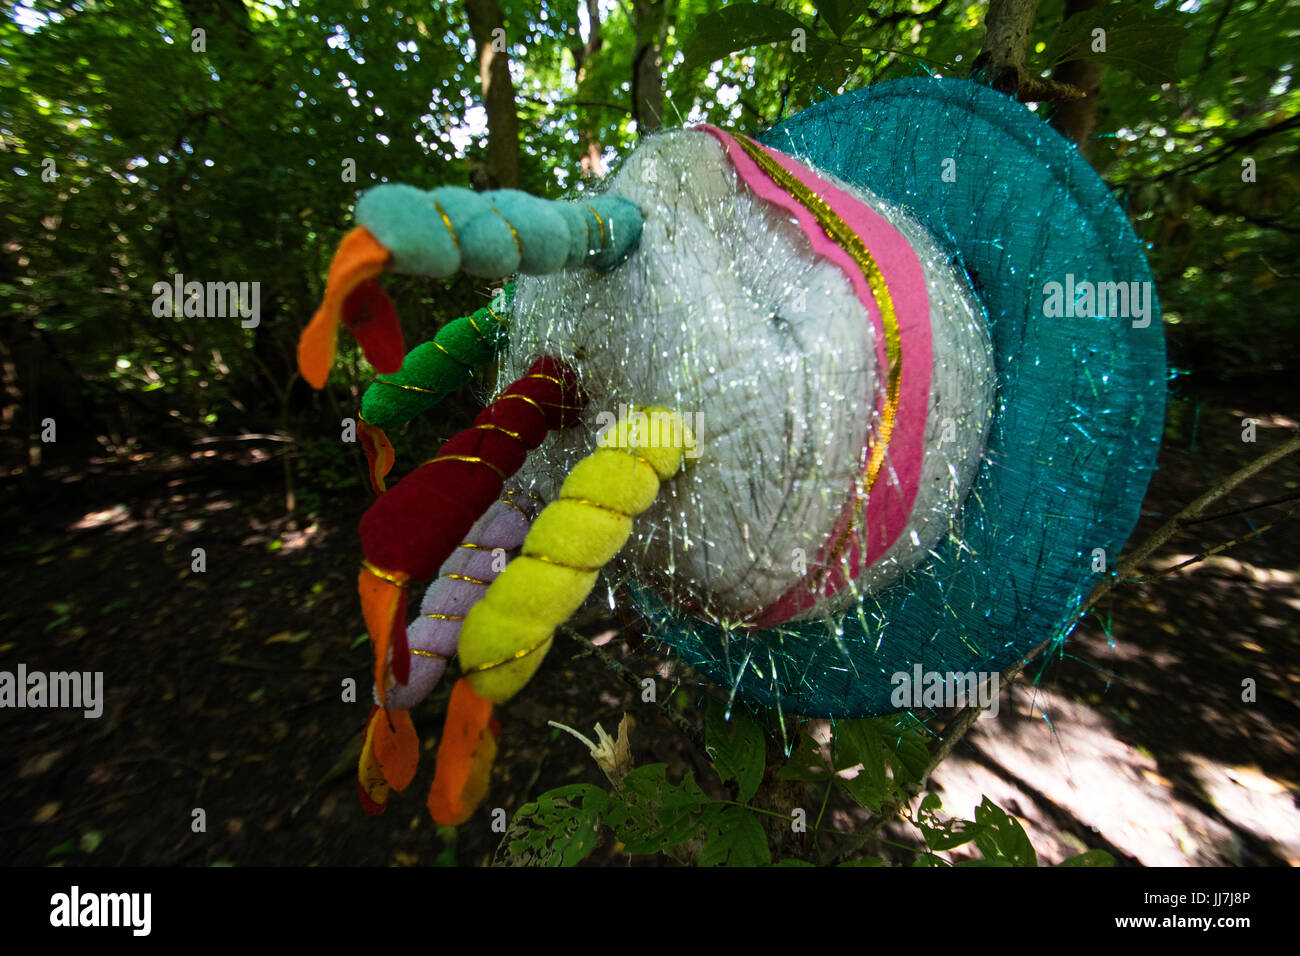 party hat found in woods - Stock Image